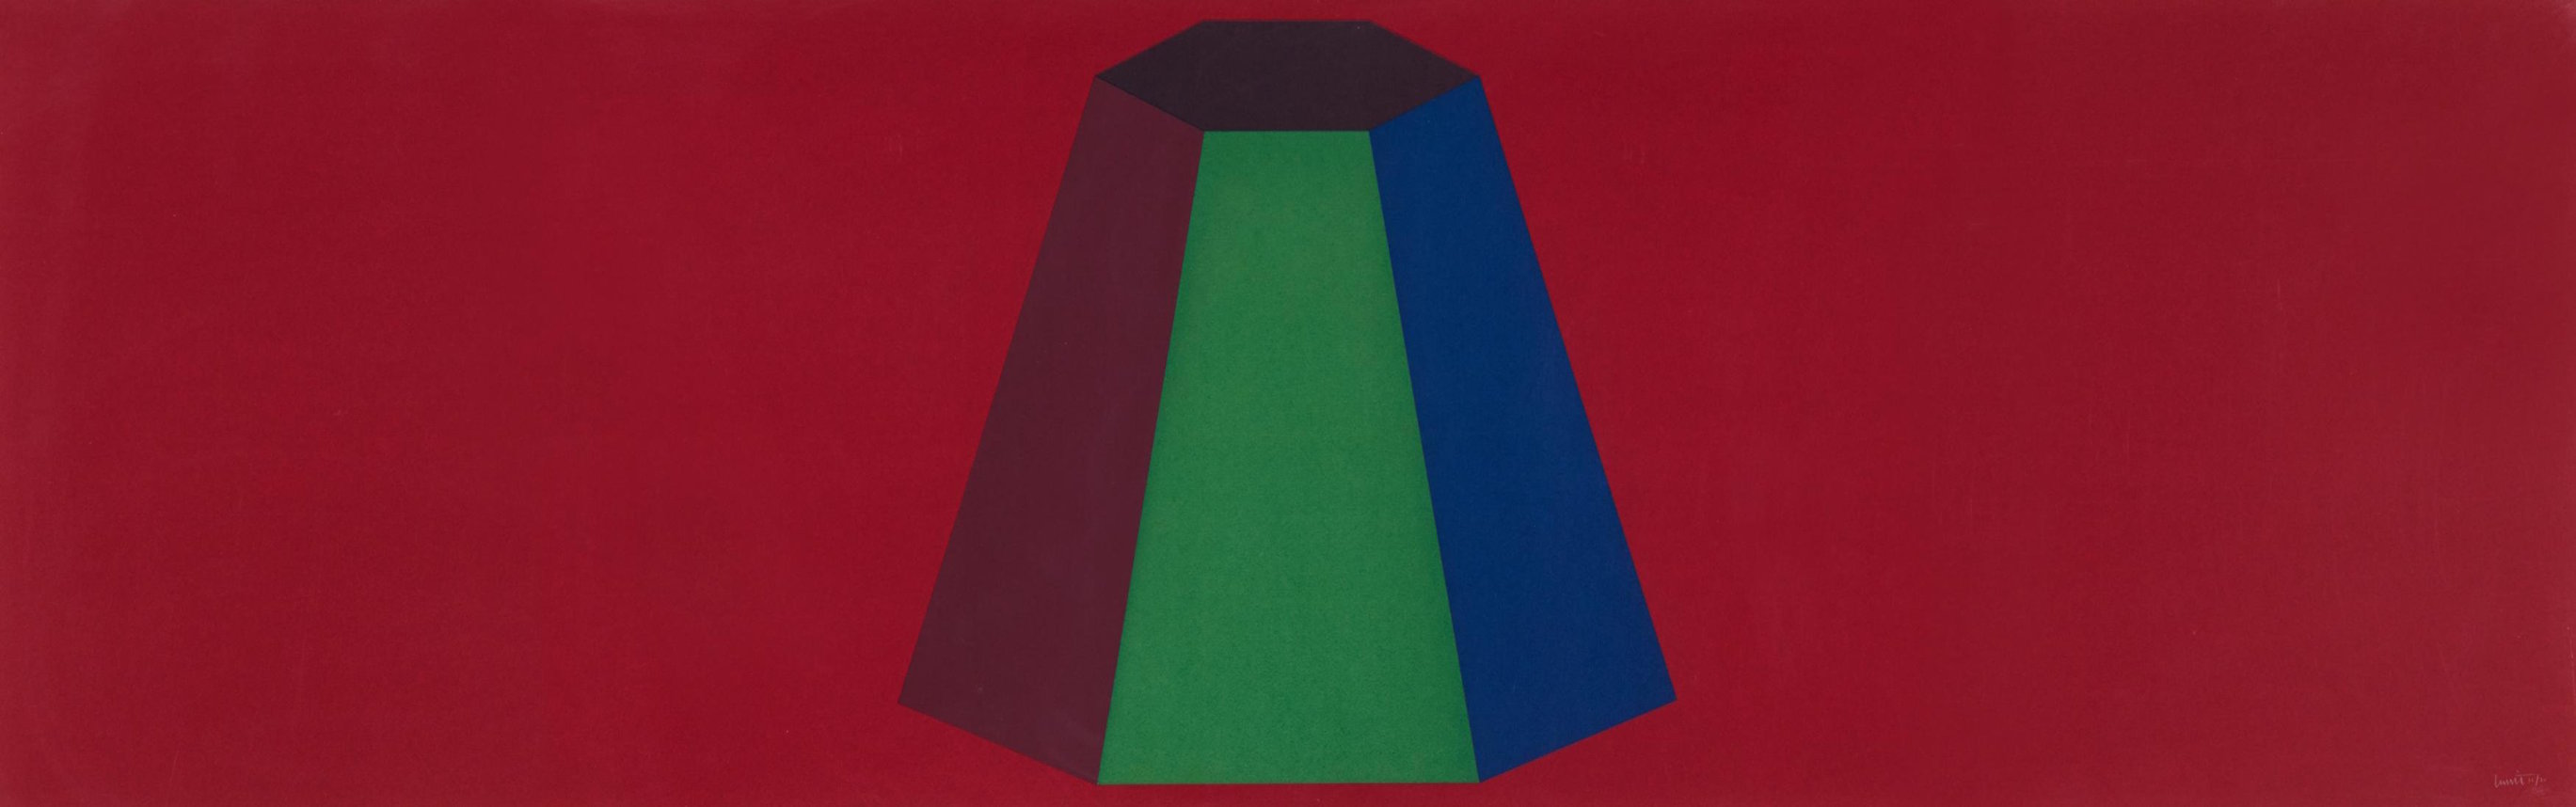 Flat Top Pyramid With Colors Superimposed 1988 Limited Edition Print by Sol LeWitt